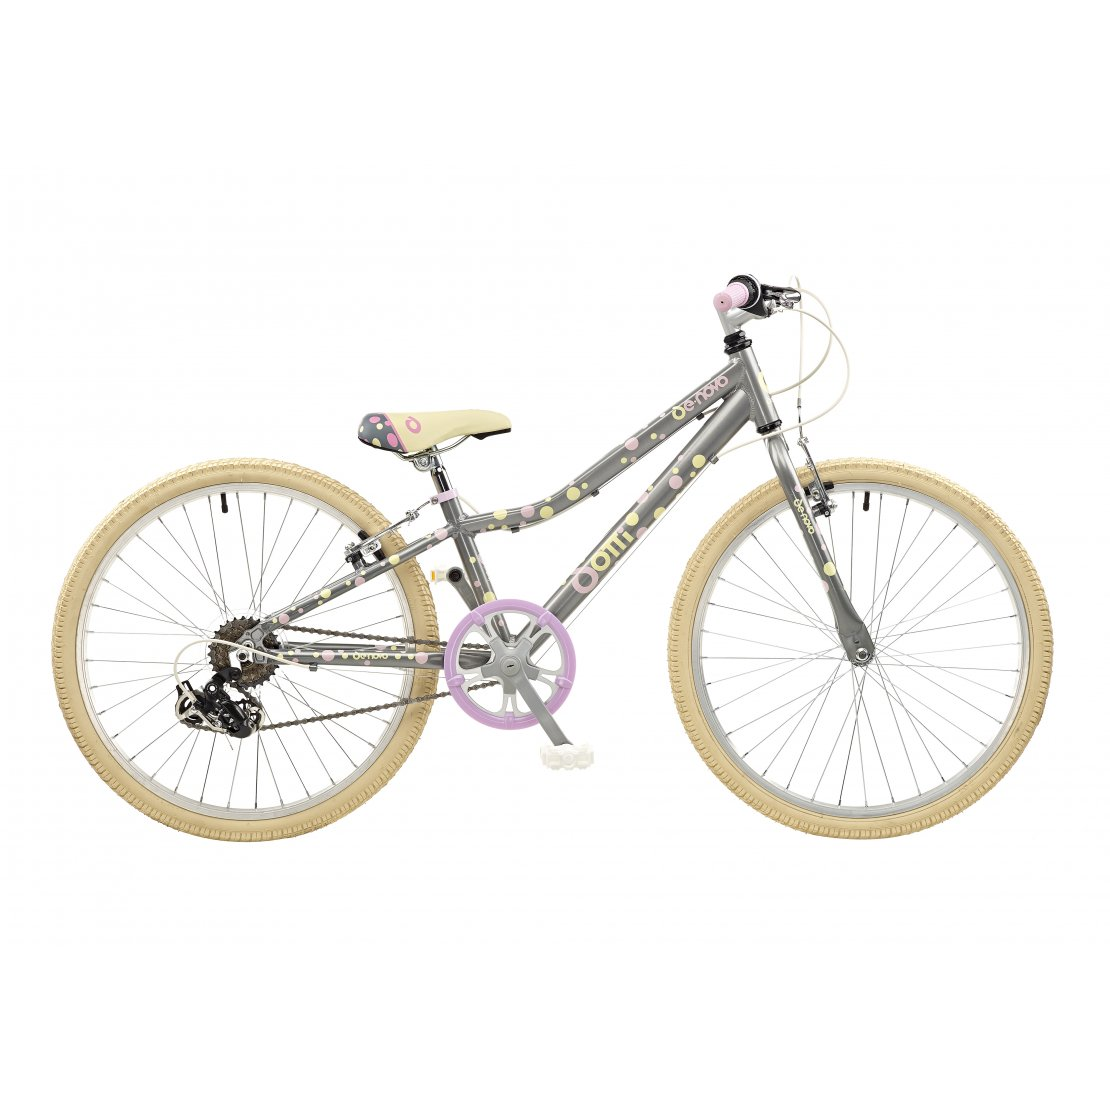 cb4cba84e De Novo Dotti-24 ATB Alloy Girls 24″ Wheel (Platinum Grey Cream ...